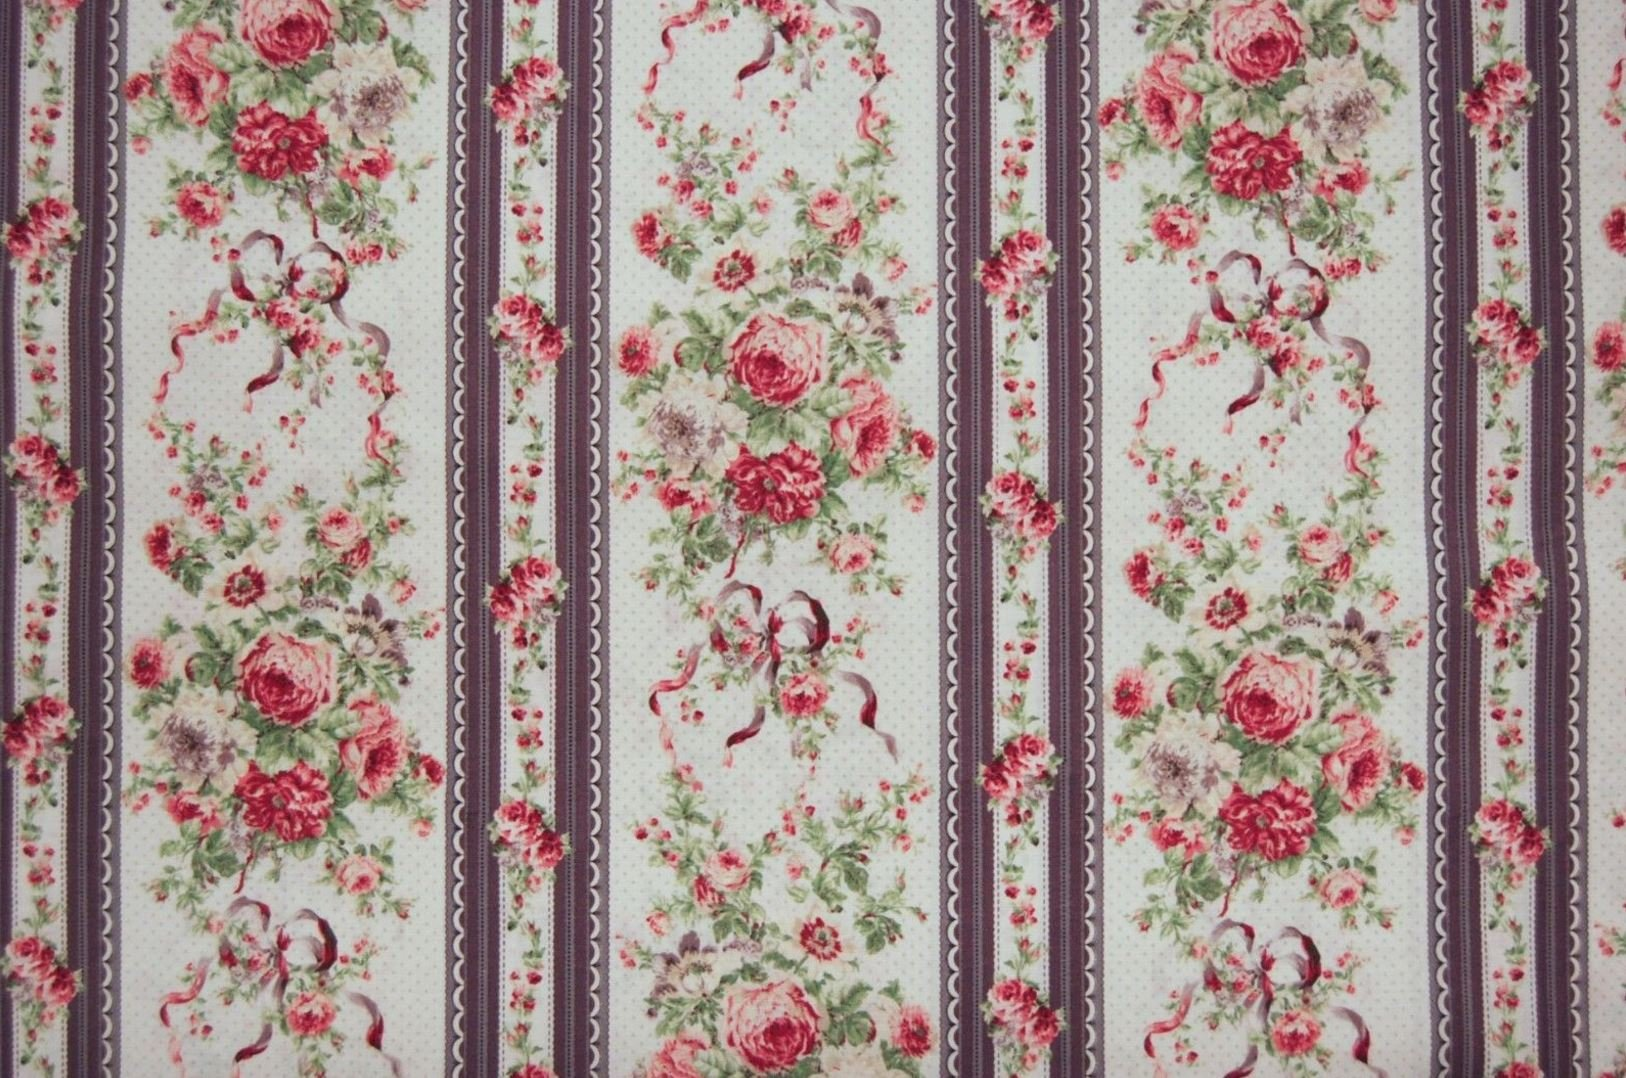 Floral Vintage Style French Rose Bouquet Japanese Asian Cotton Quilt Fabric QG02